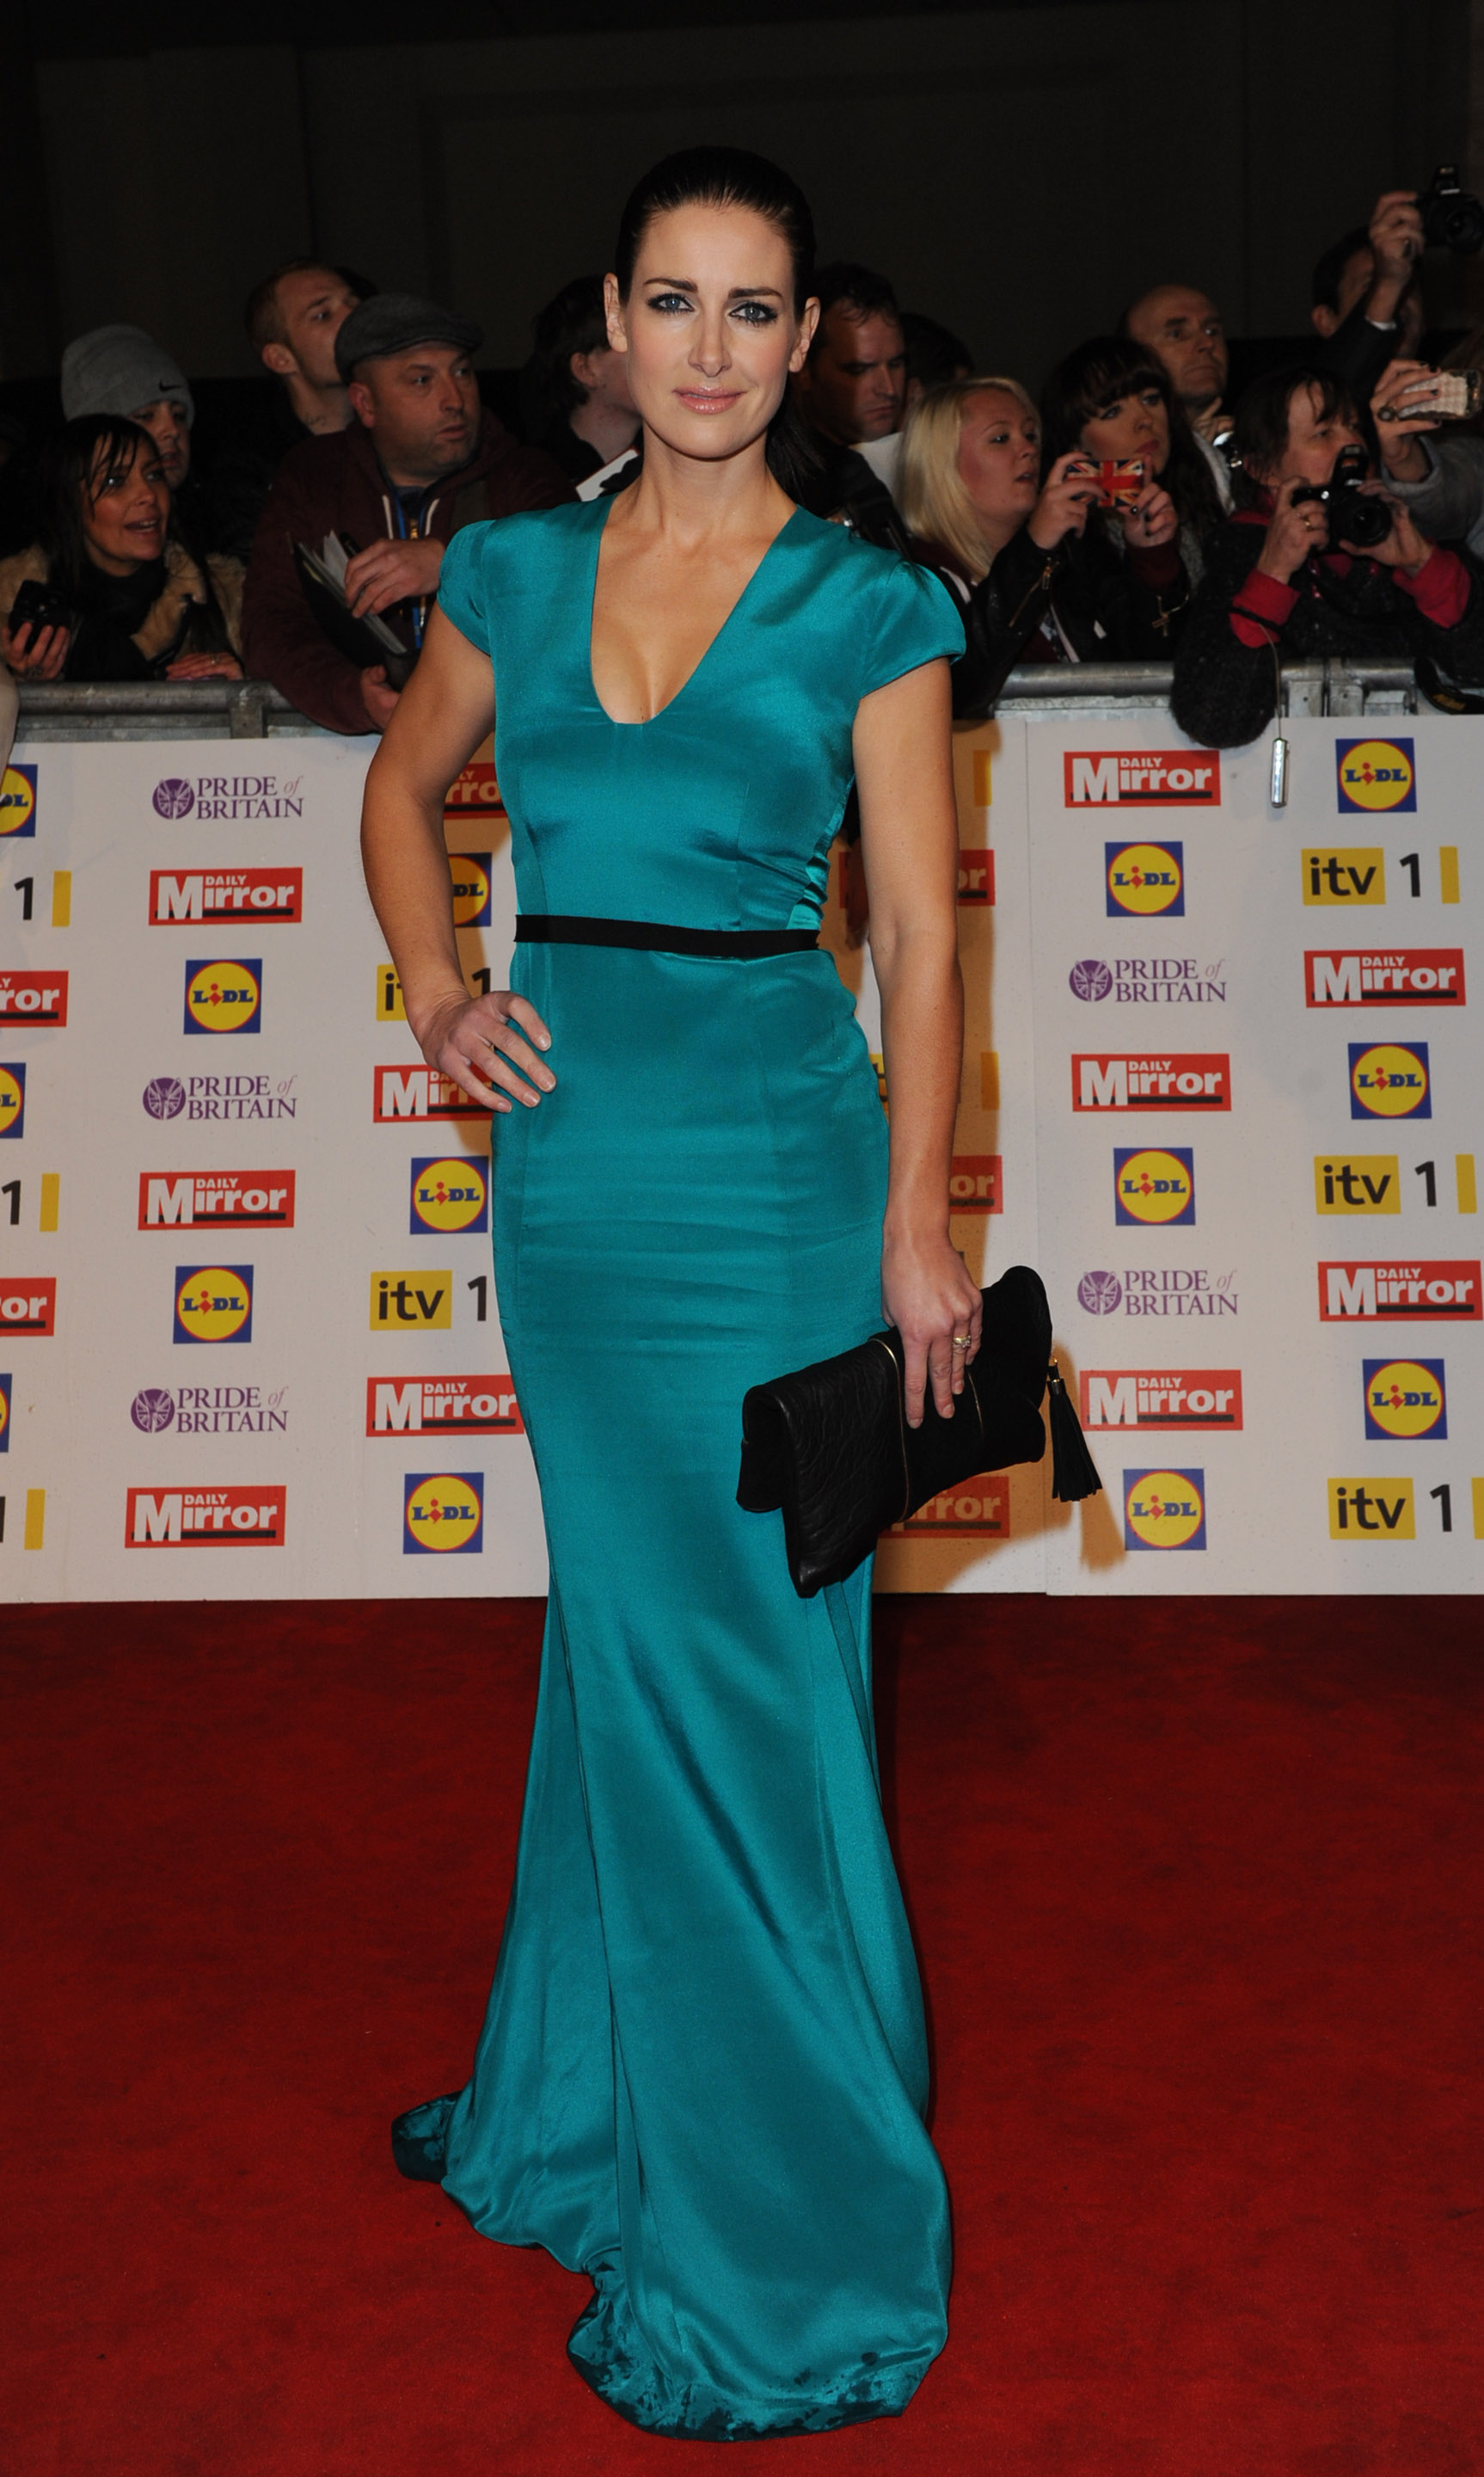 Kirsty Gallacher 2012 : Kirsty Gallacher cleavage-06